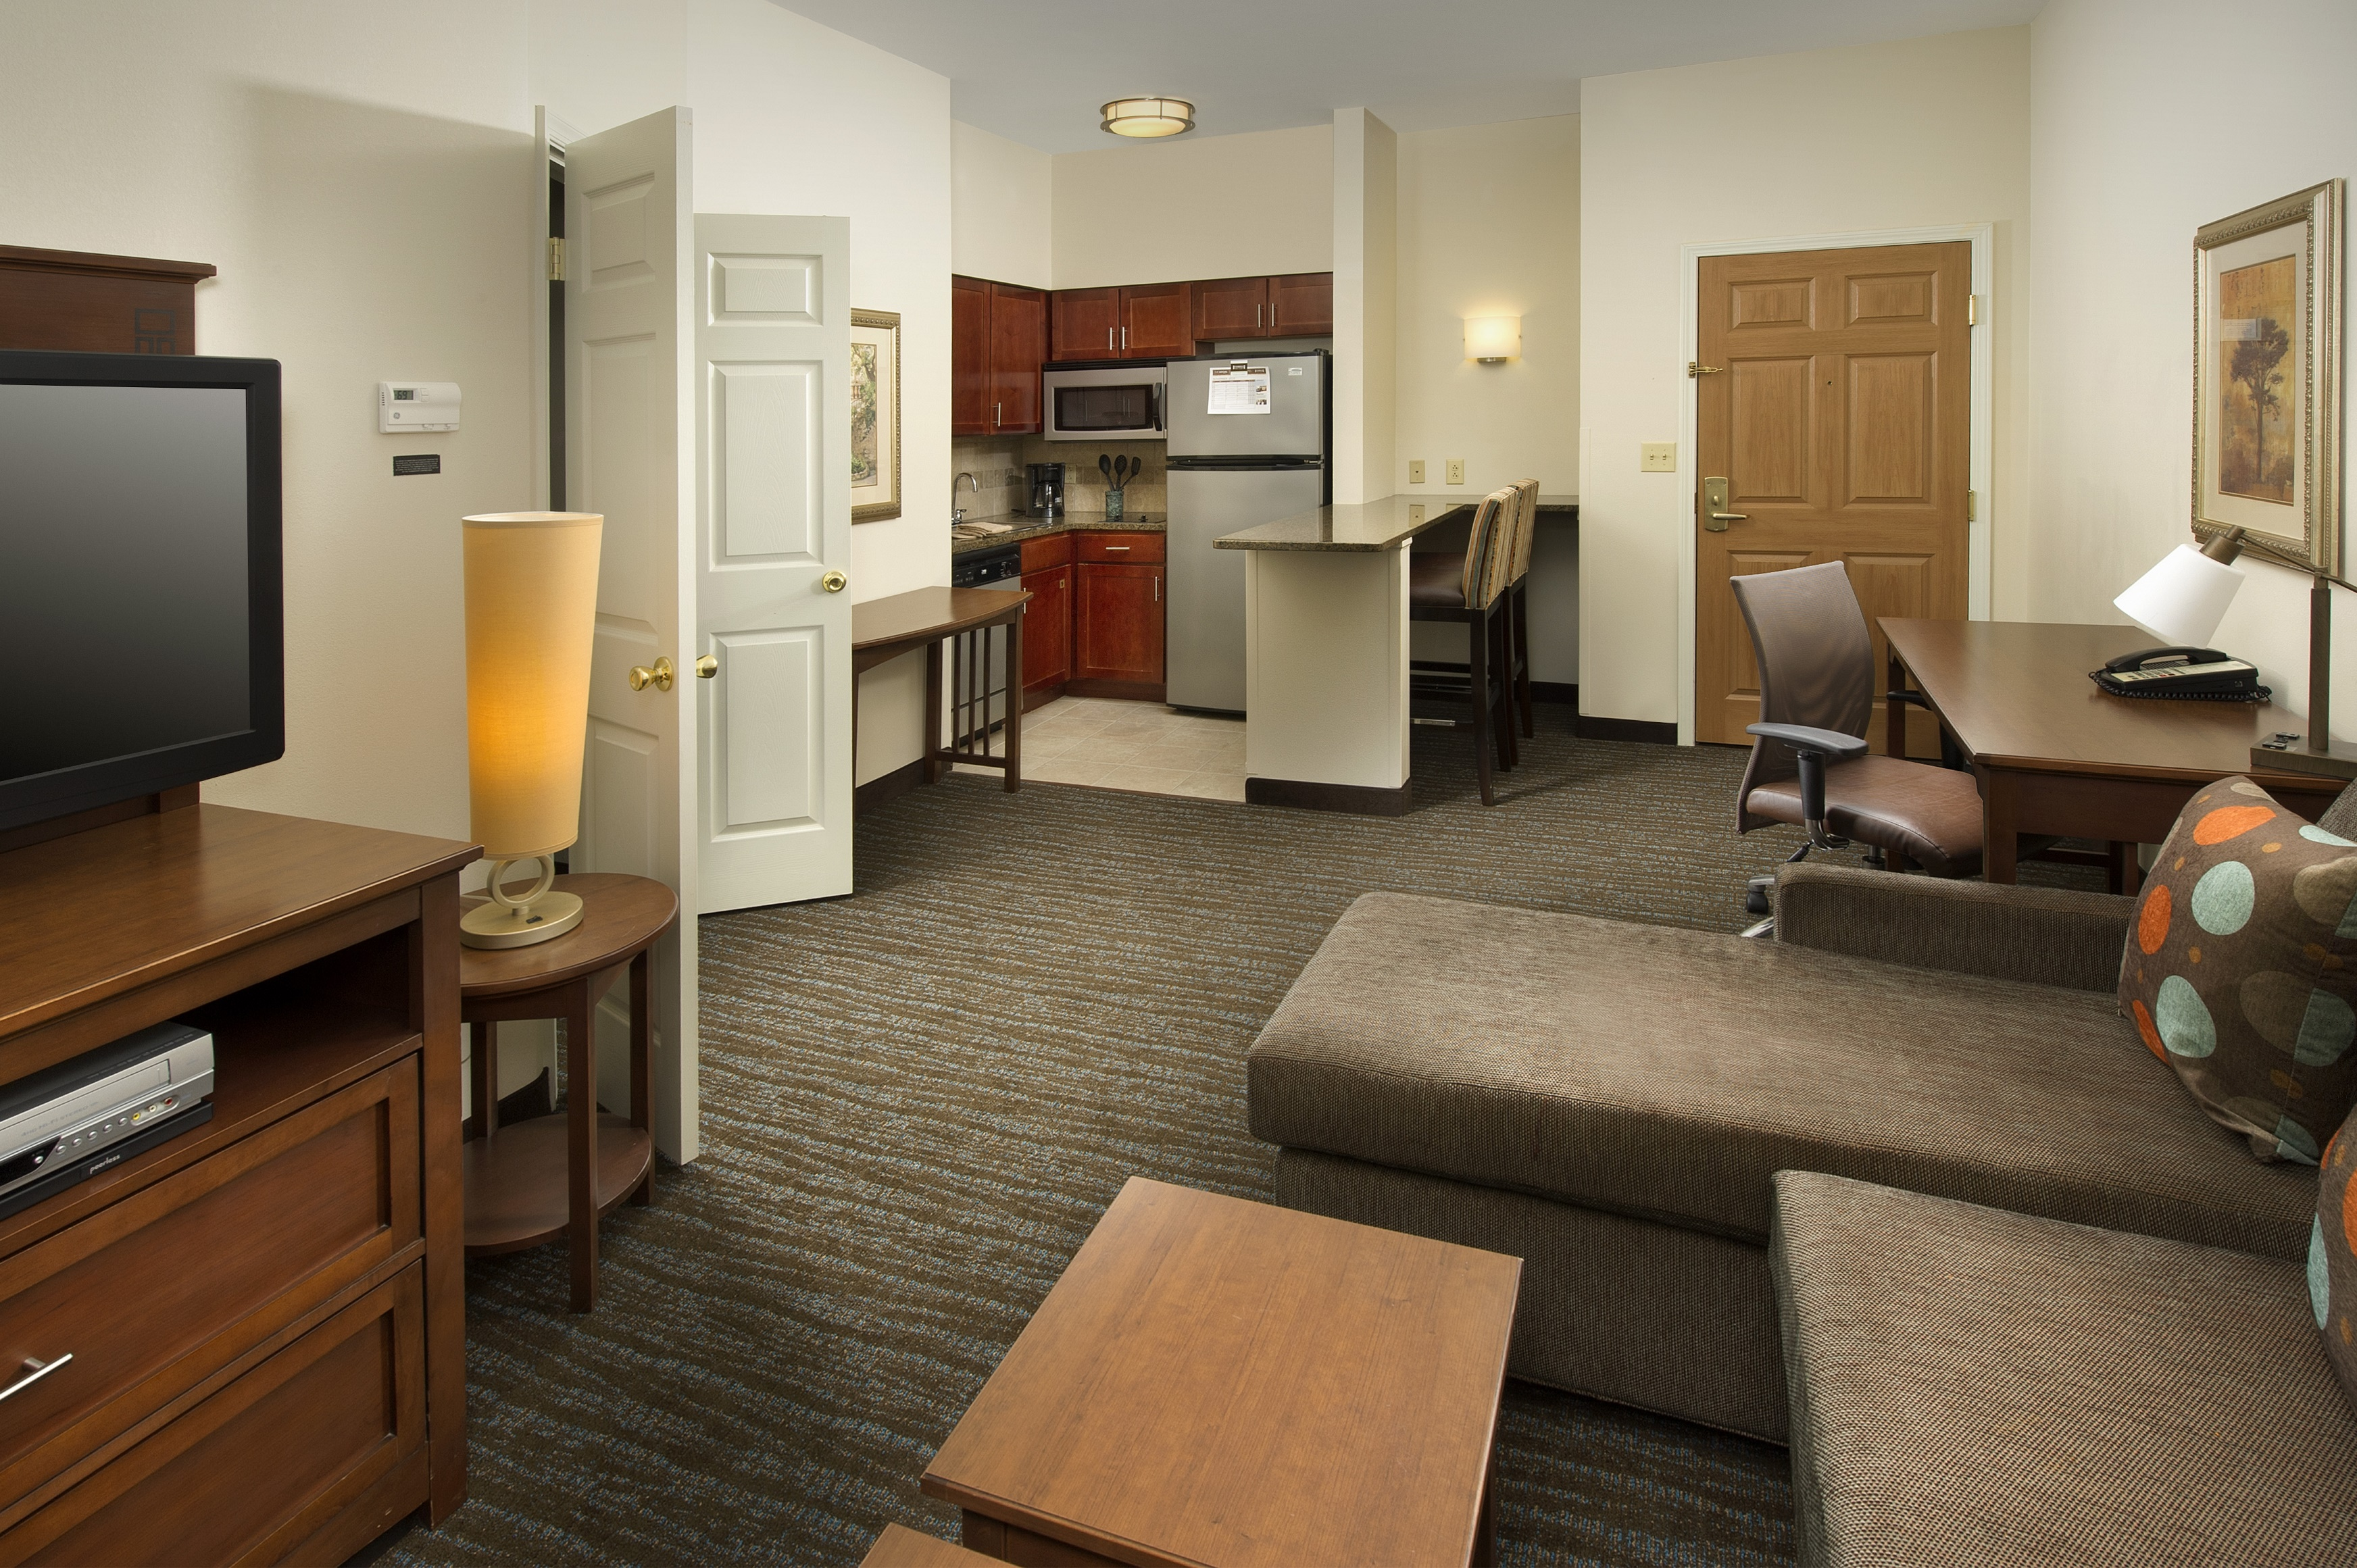 Full Renovations Complete At The Staybridge Suites